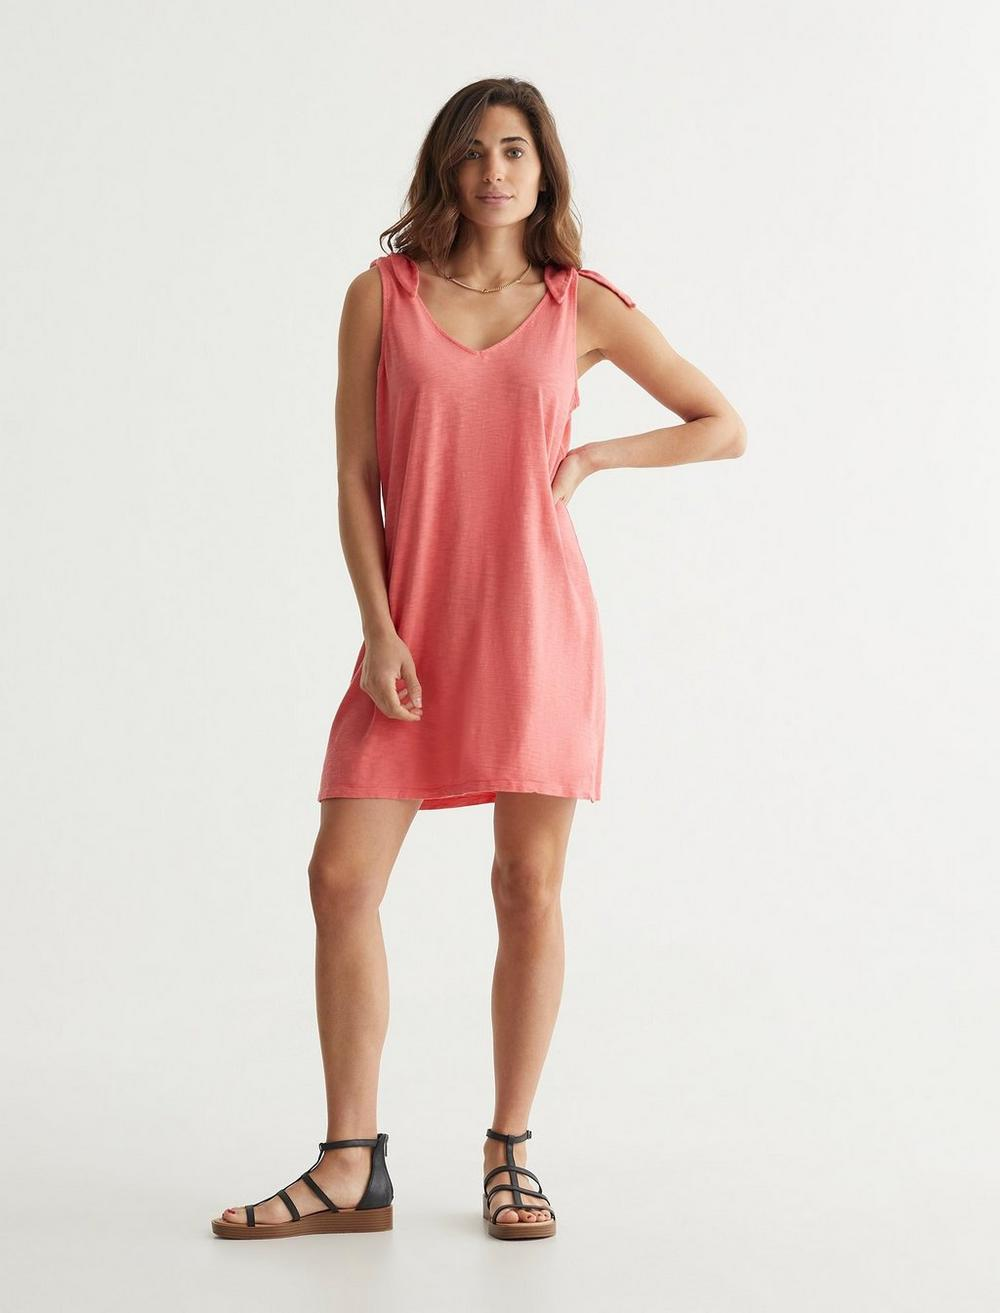 KNOTTED TANK DRESS, image 2